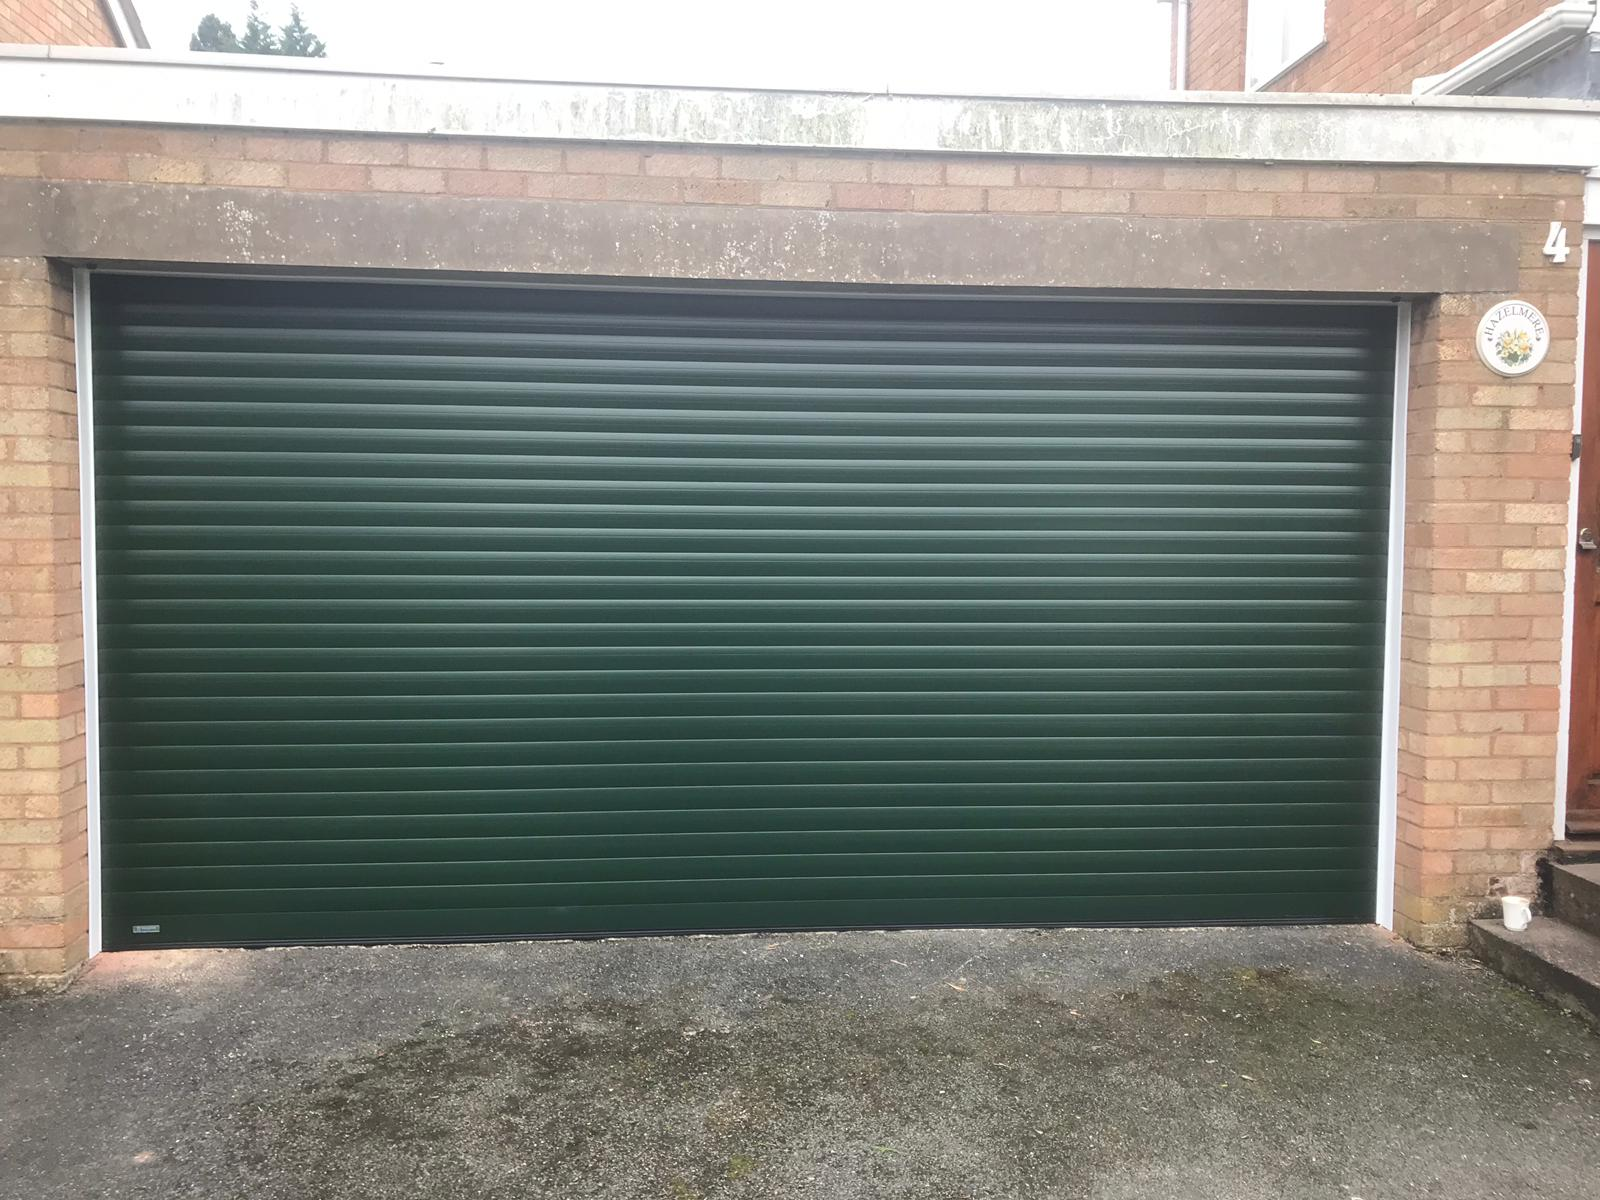 Green Secure by Design SWS Rolller Garage Door Jan 19